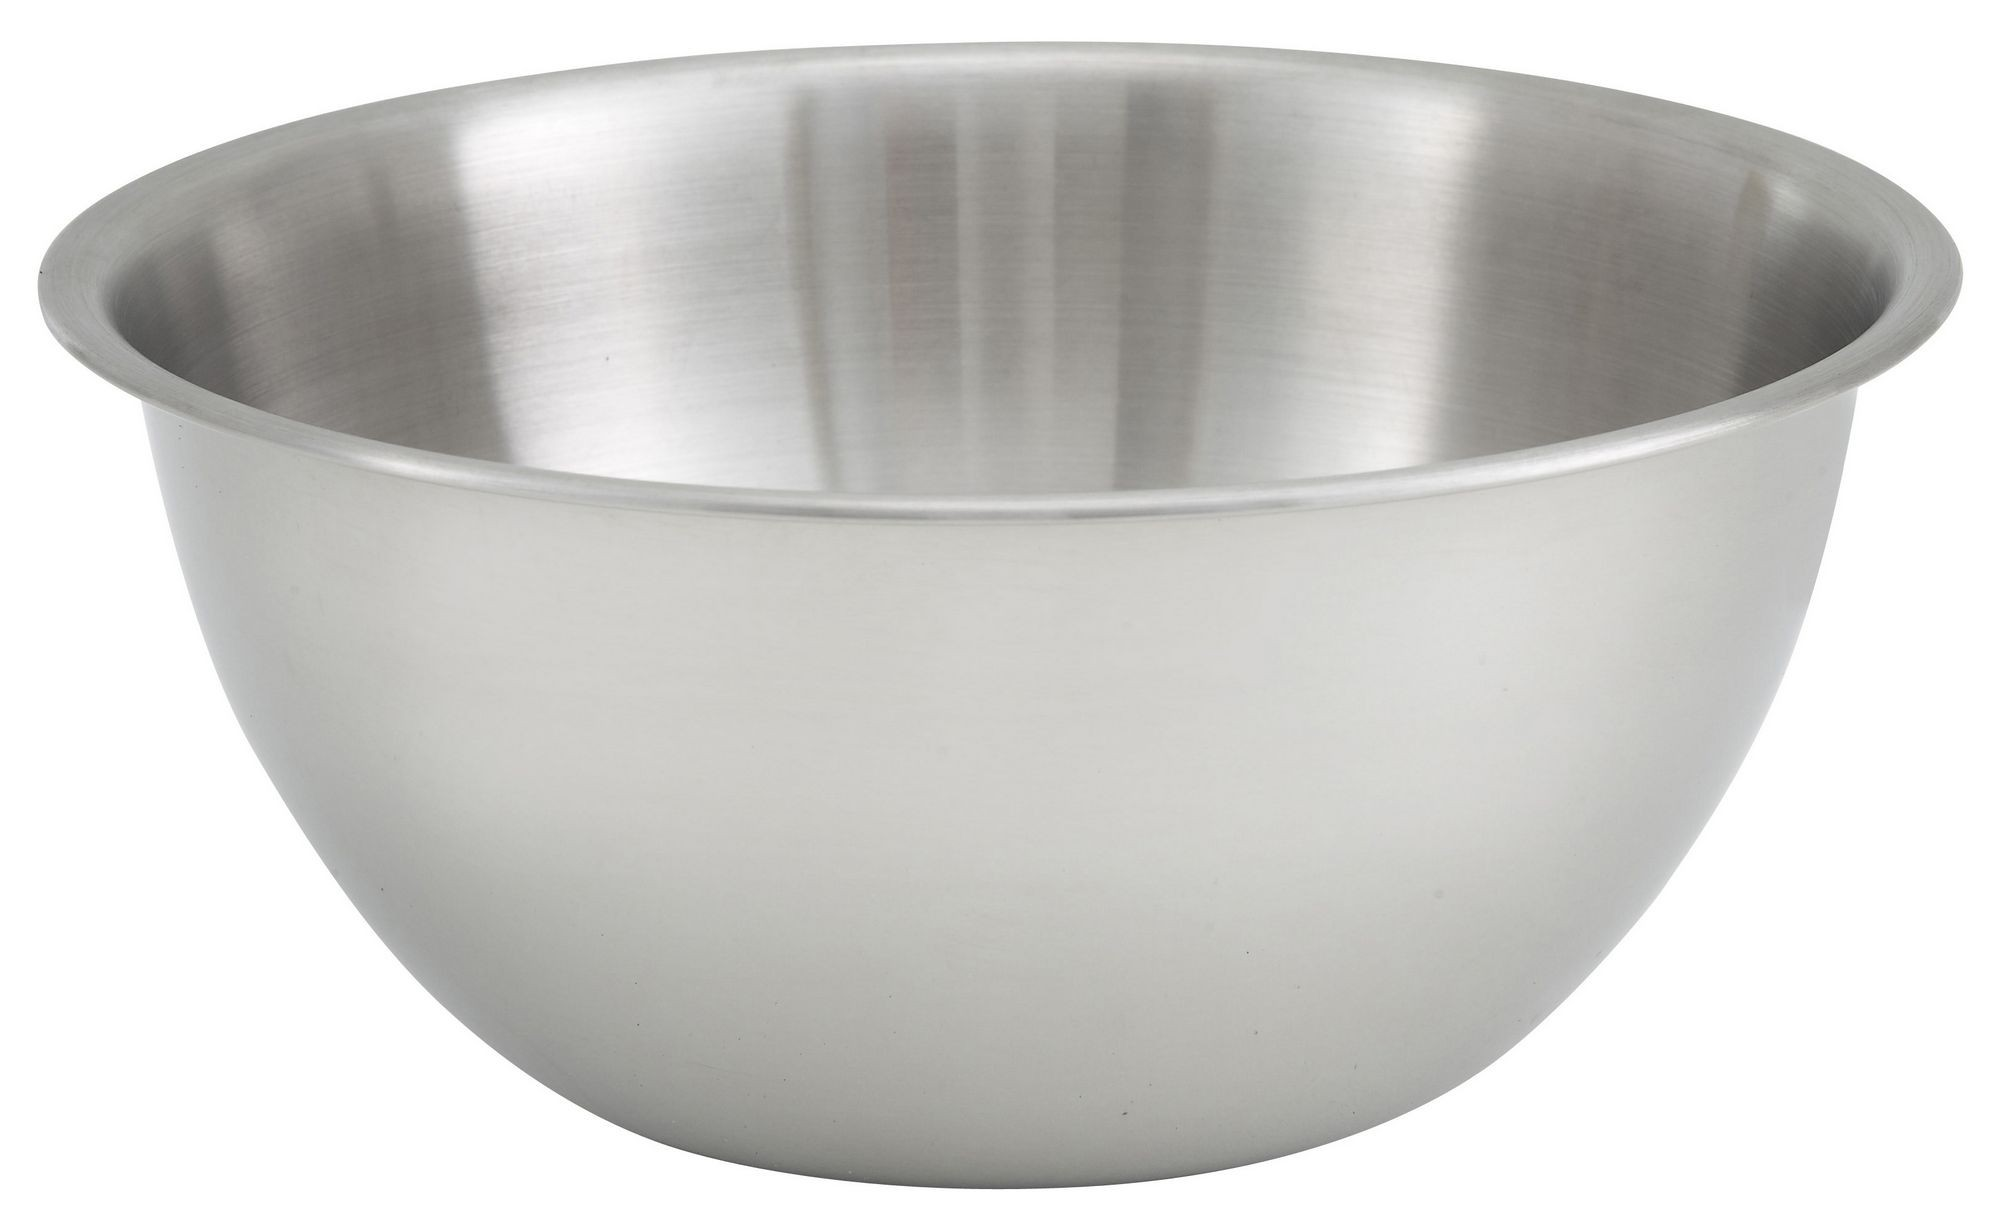 Heavy Duty Stainless Steel 13 Qt. Mixing Bowl - 15-1/5 X 6-3/10